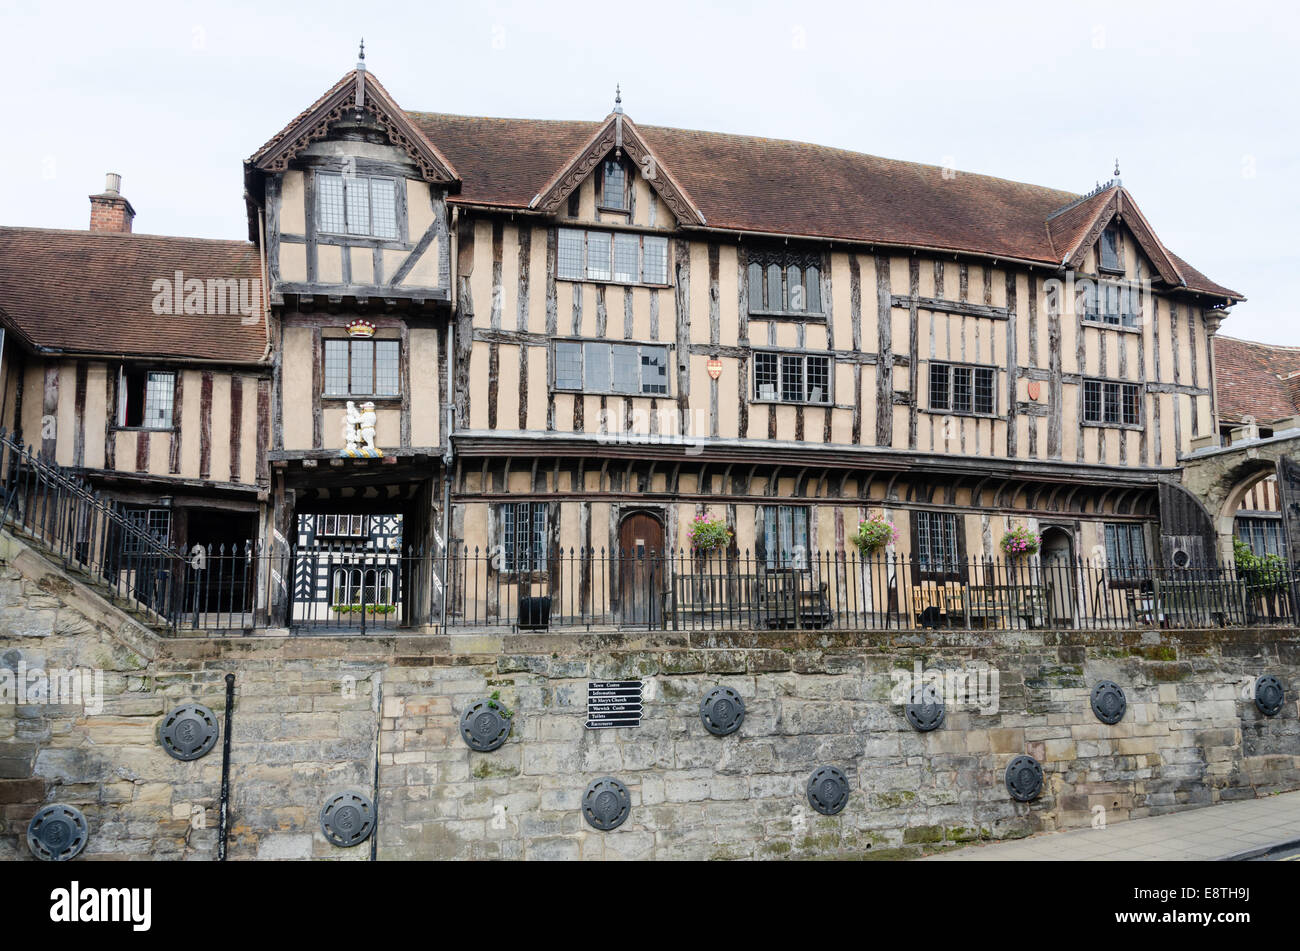 Lord Leycester Hospital a cluster of half-timbered buildings in Warwick which was a charitable institution - Stock Image